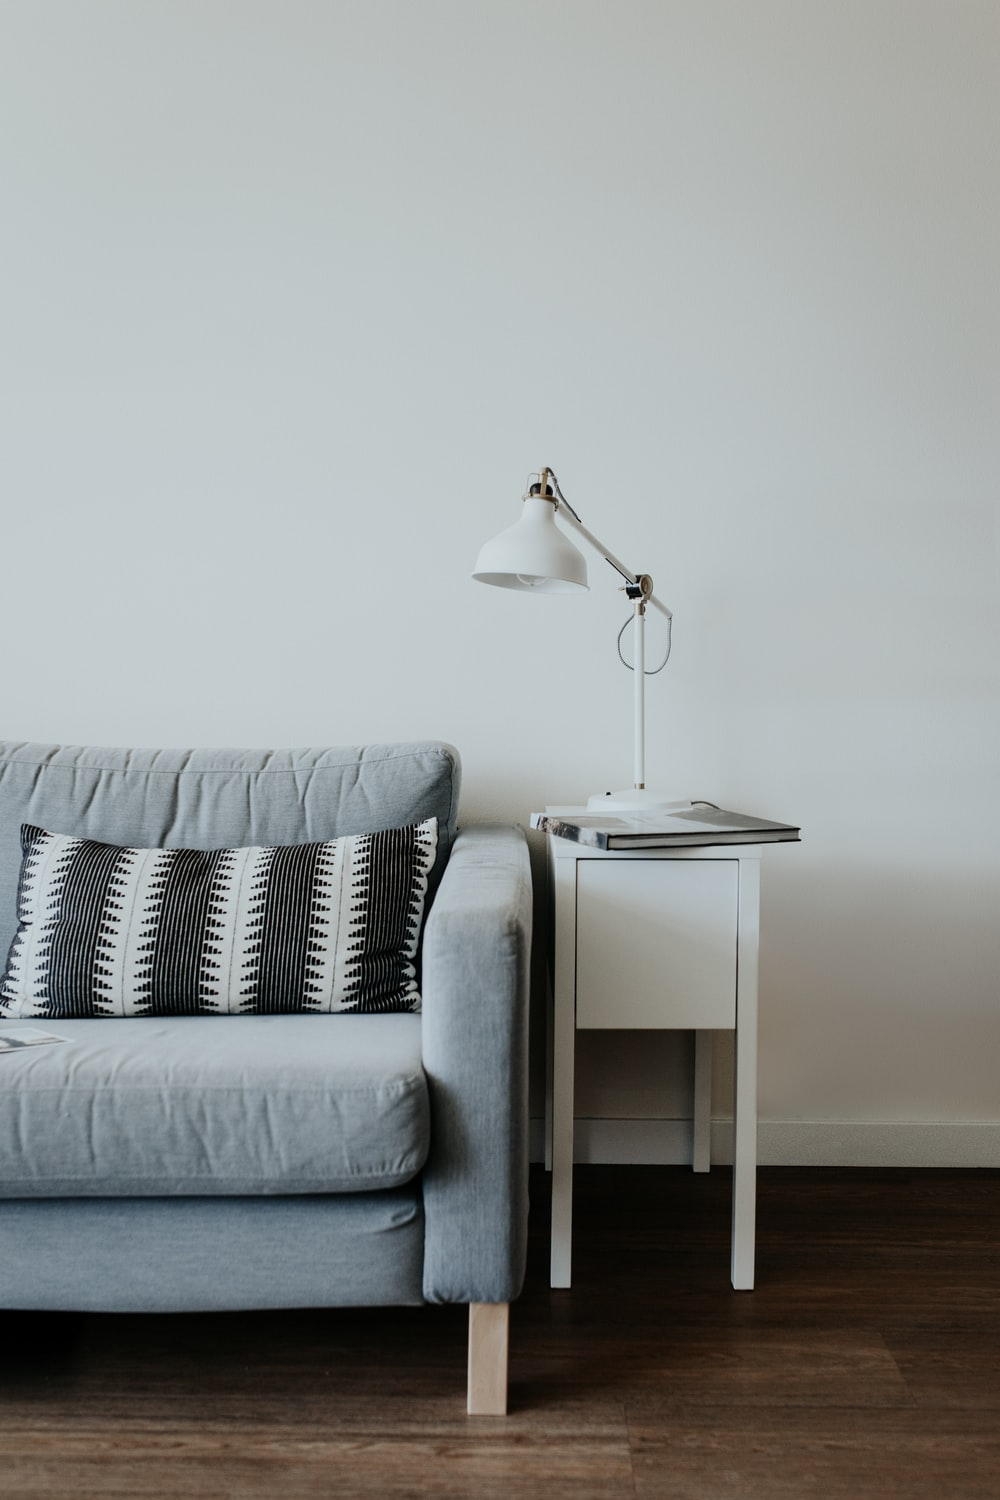 white study lamp on top of white wooden end table beside gray fabric sofa